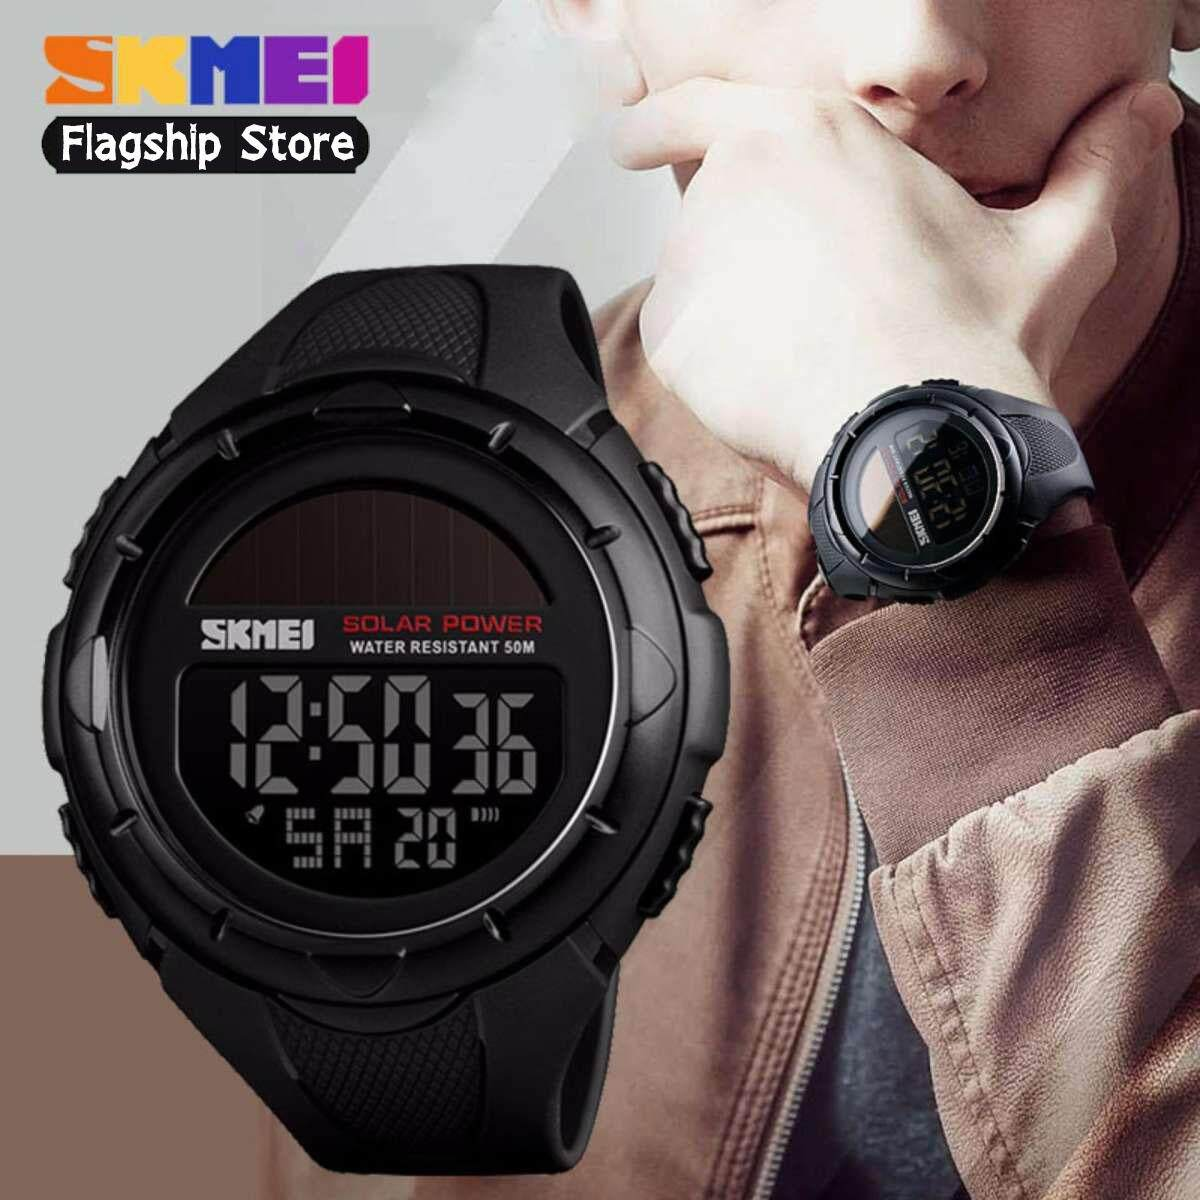 Watches Fashion Style 2018 Smael Top Luxury Brand G Style Mens Military Sports Watch Led Digital Watch Waterproof 50m Mens Watch Relogio Masculino